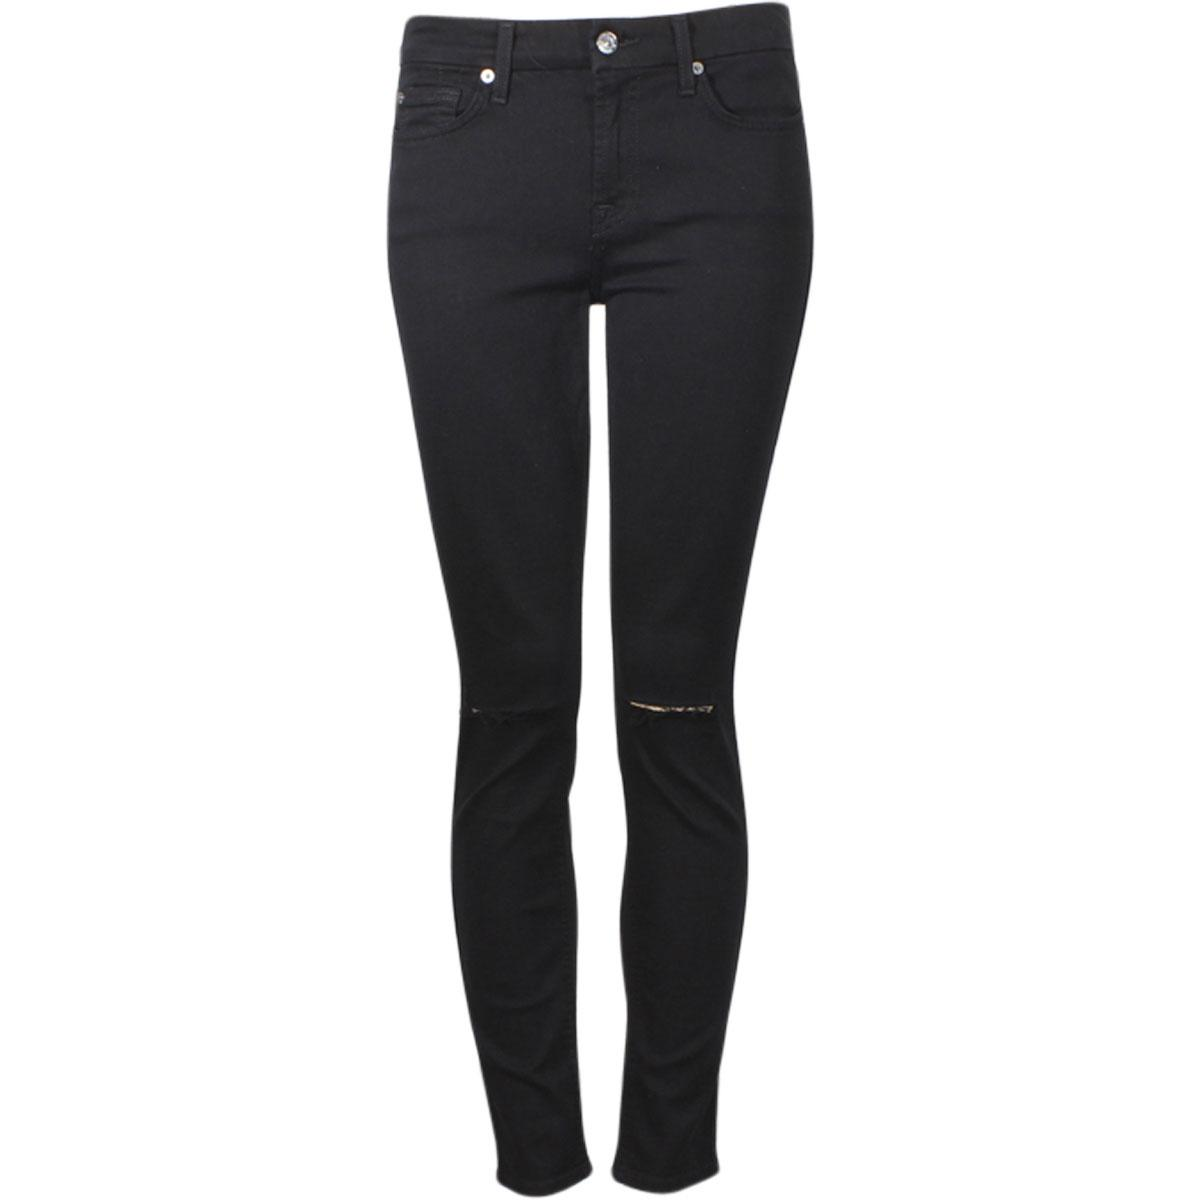 Image of 7 For All Mankind Women's (B)Air Denim Ankle Skinny With Destroy Cropped Jeans - Black - 30 (9/10)